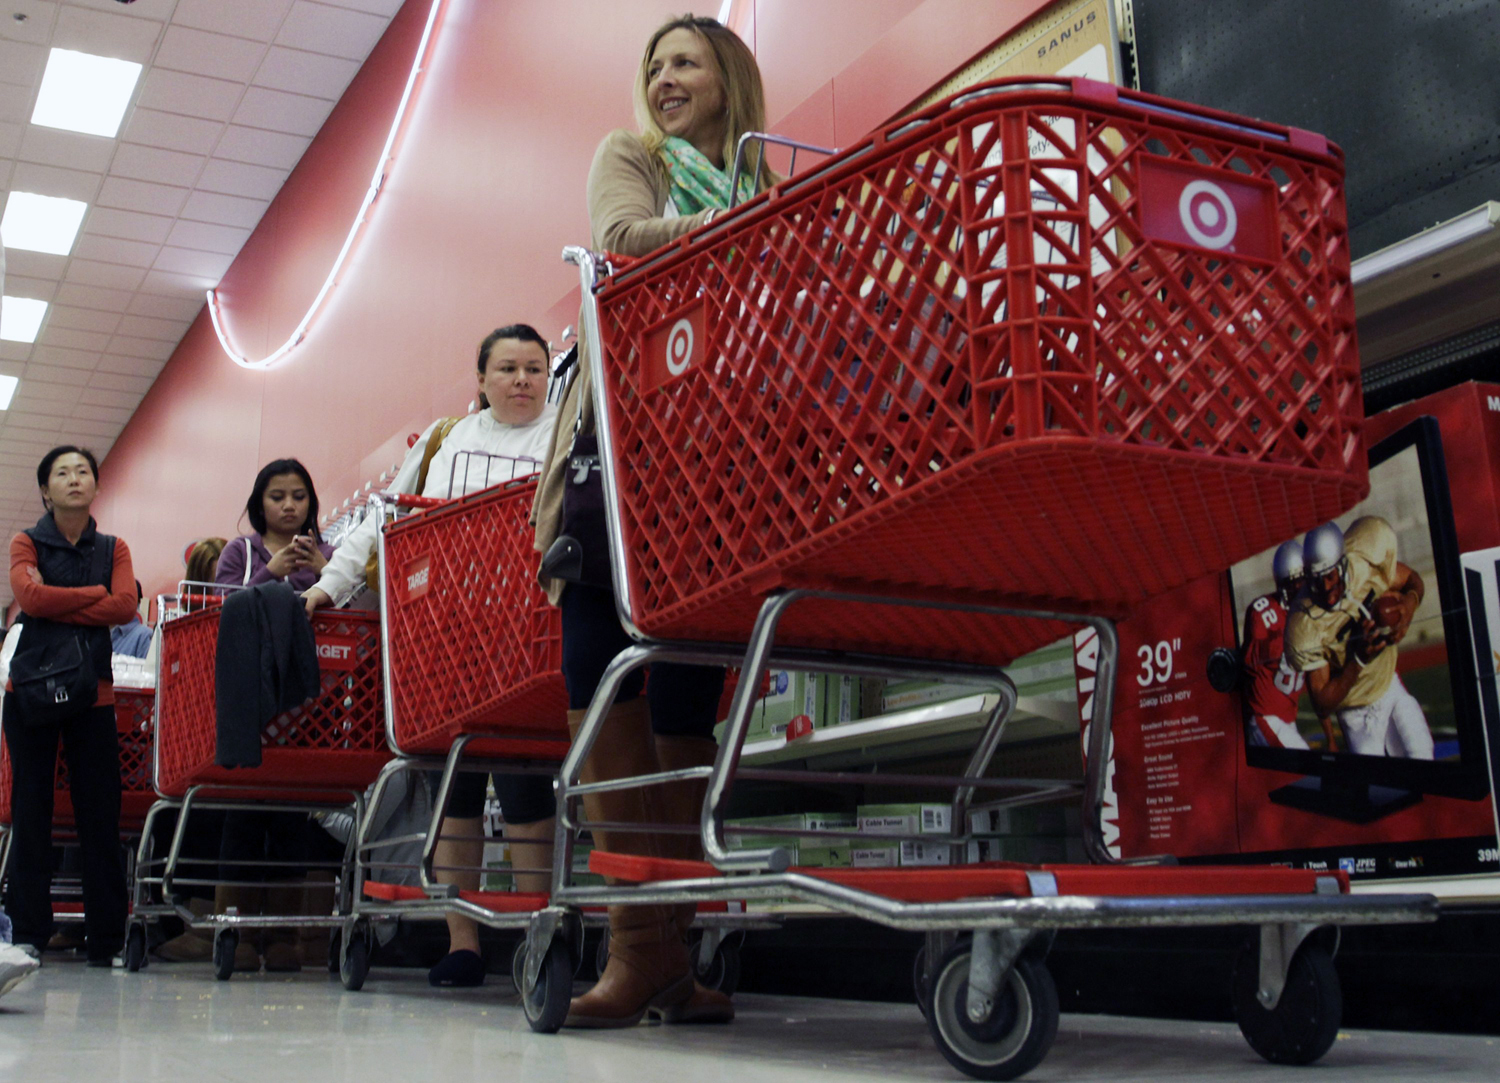 Shoppers wait in line at Target.